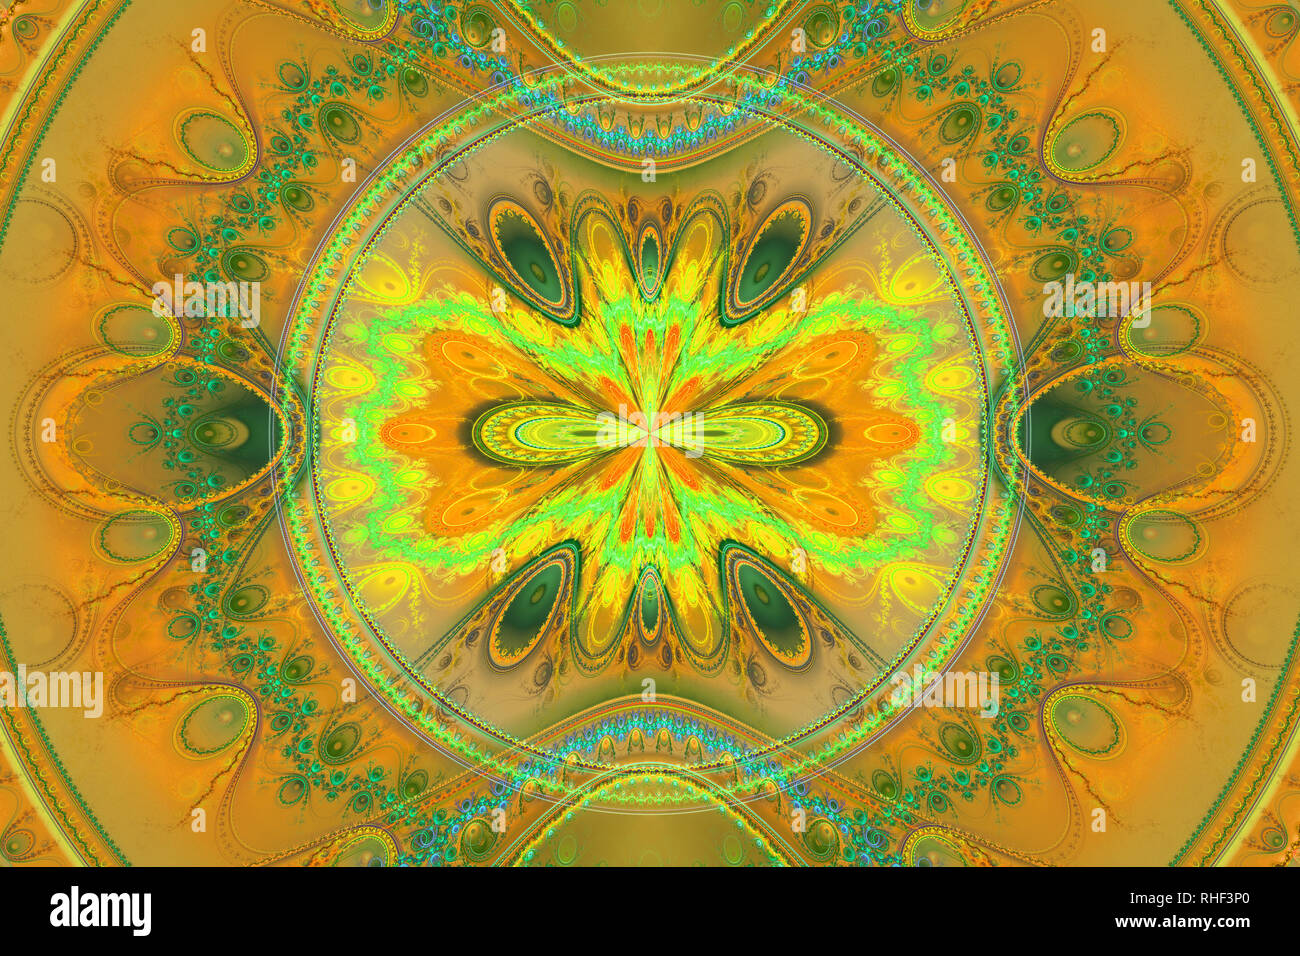 Geometric fractal shape can illustrate daydreaming imagination psychedelic space dreams magic explosion frequency patterns radiation concepts. - Stock Image